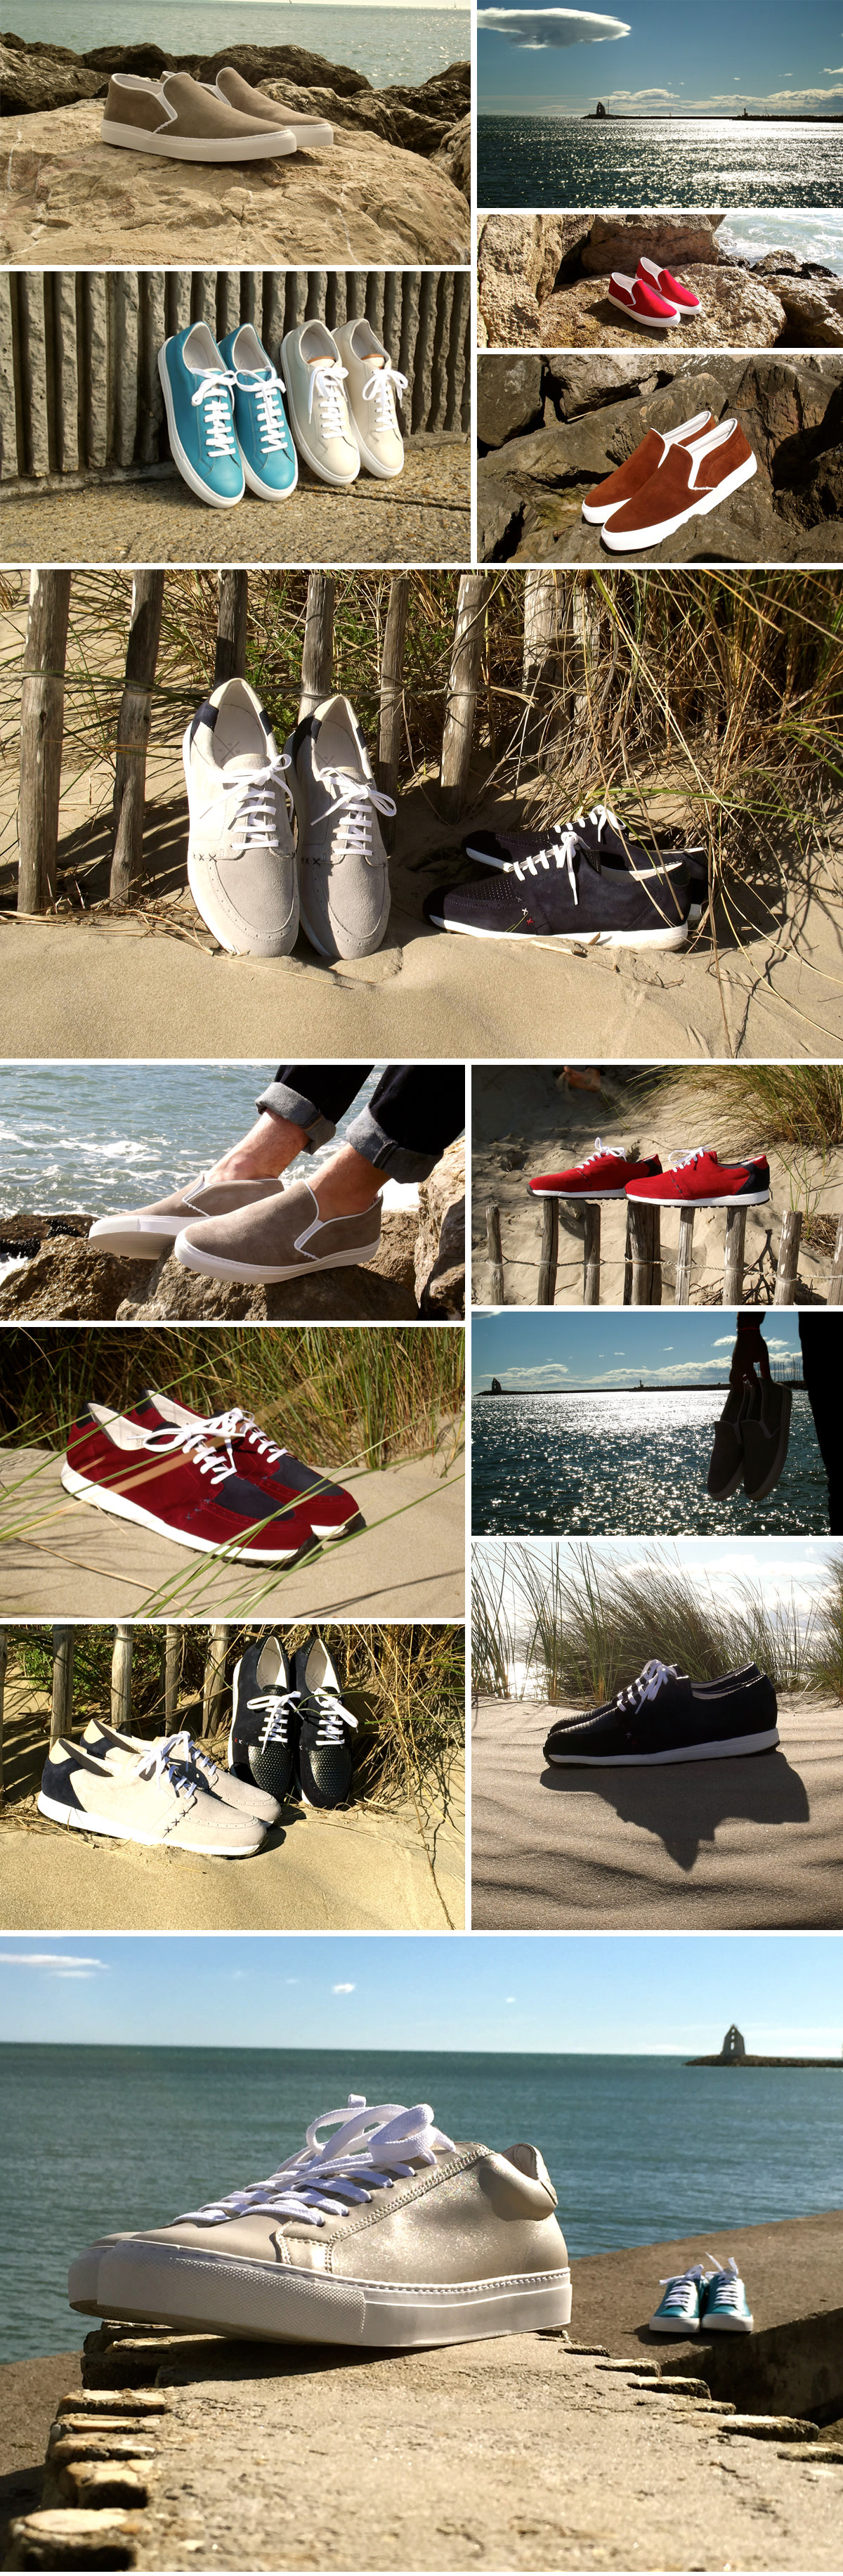 lookbook-DUTT-du-travail-traditionnel-sneakers-basket-chaussures-made-in-france-lifestyle-homme-effronte-01